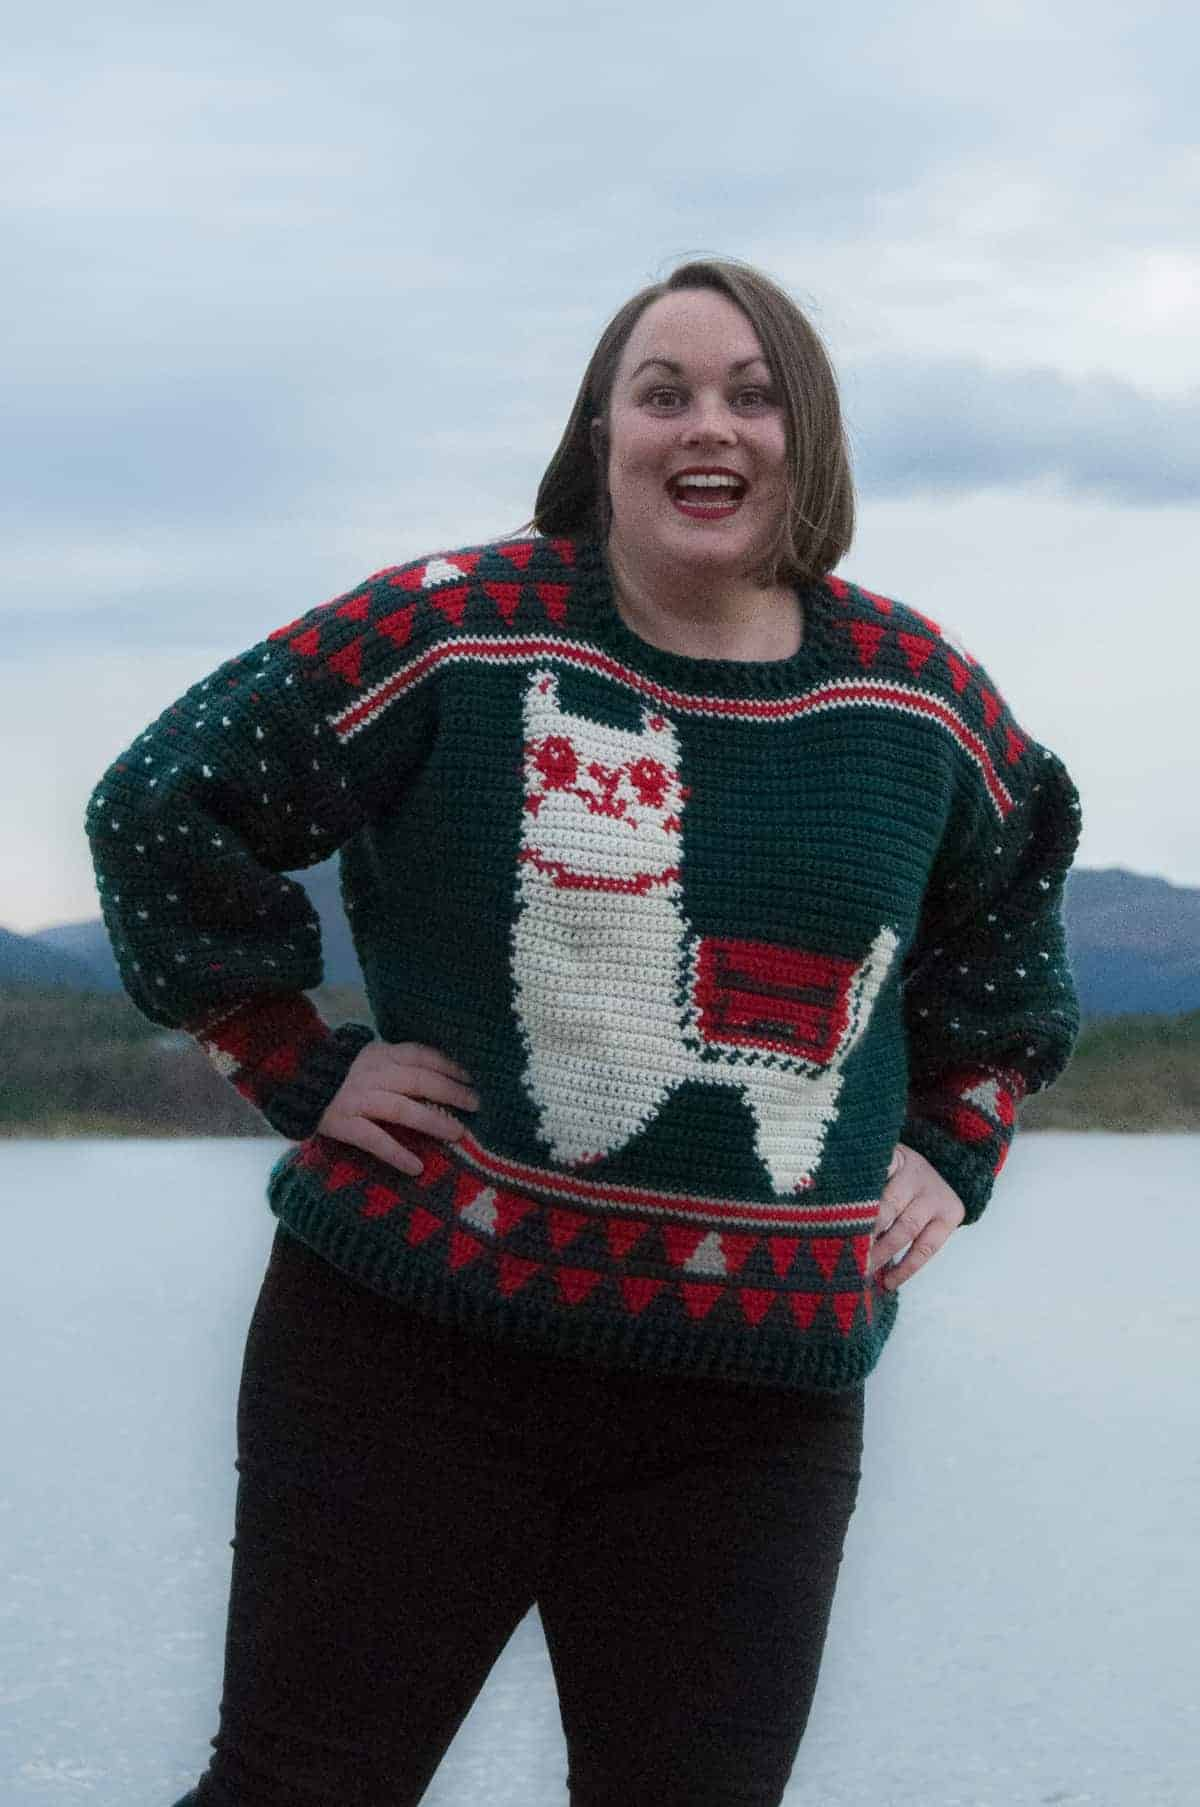 crochet alpaca my holiday sweater free crochet pattern modeled, ugly christmas sweater